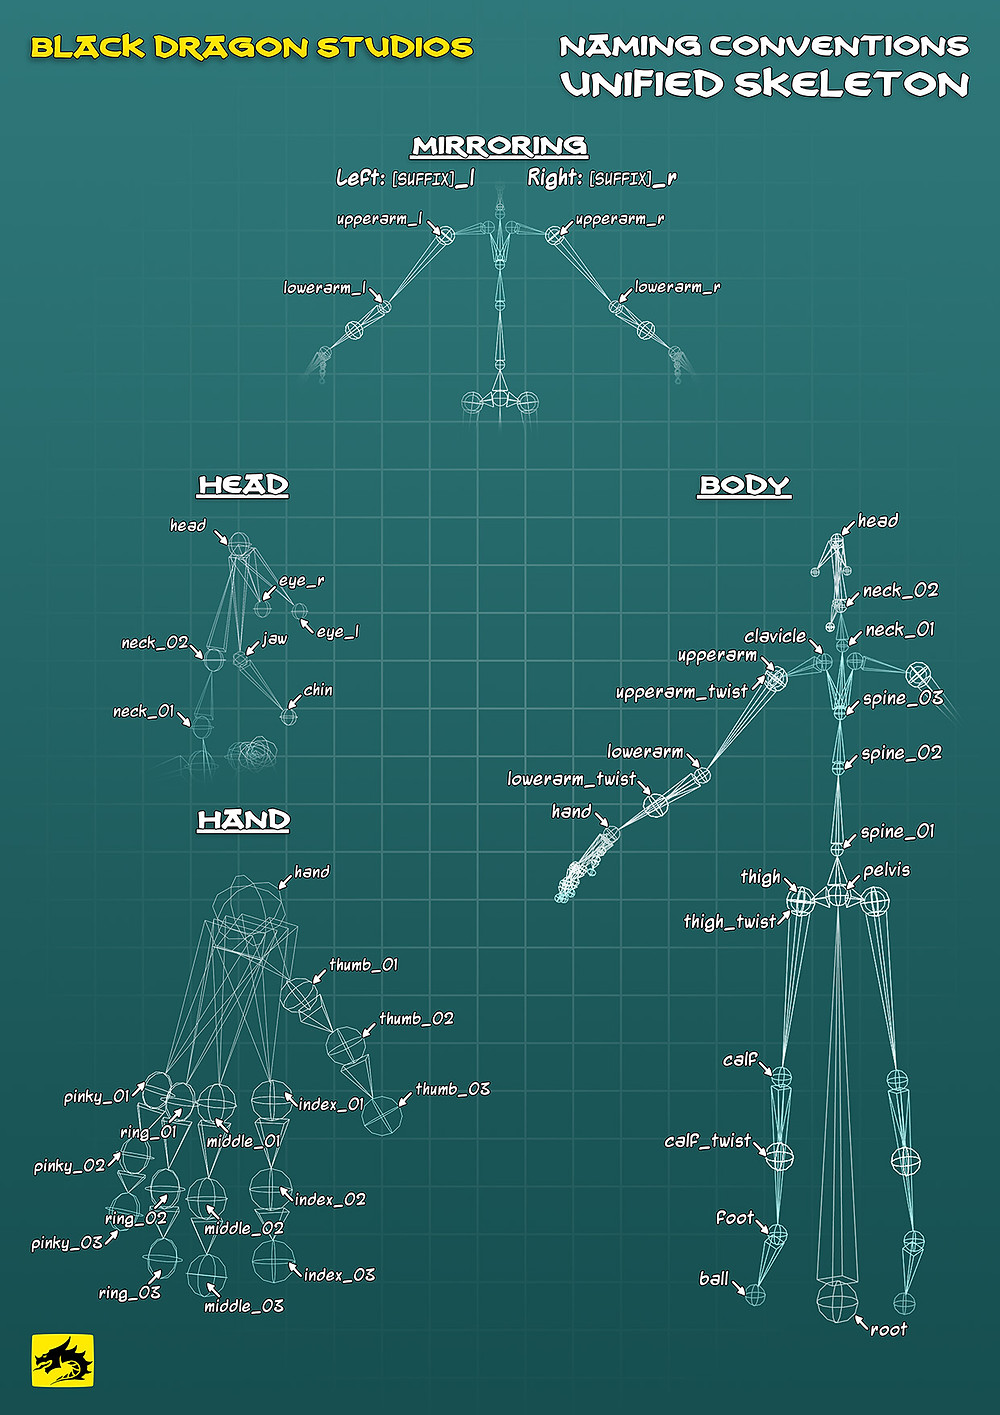 Skeleton Naming Conventions Poster